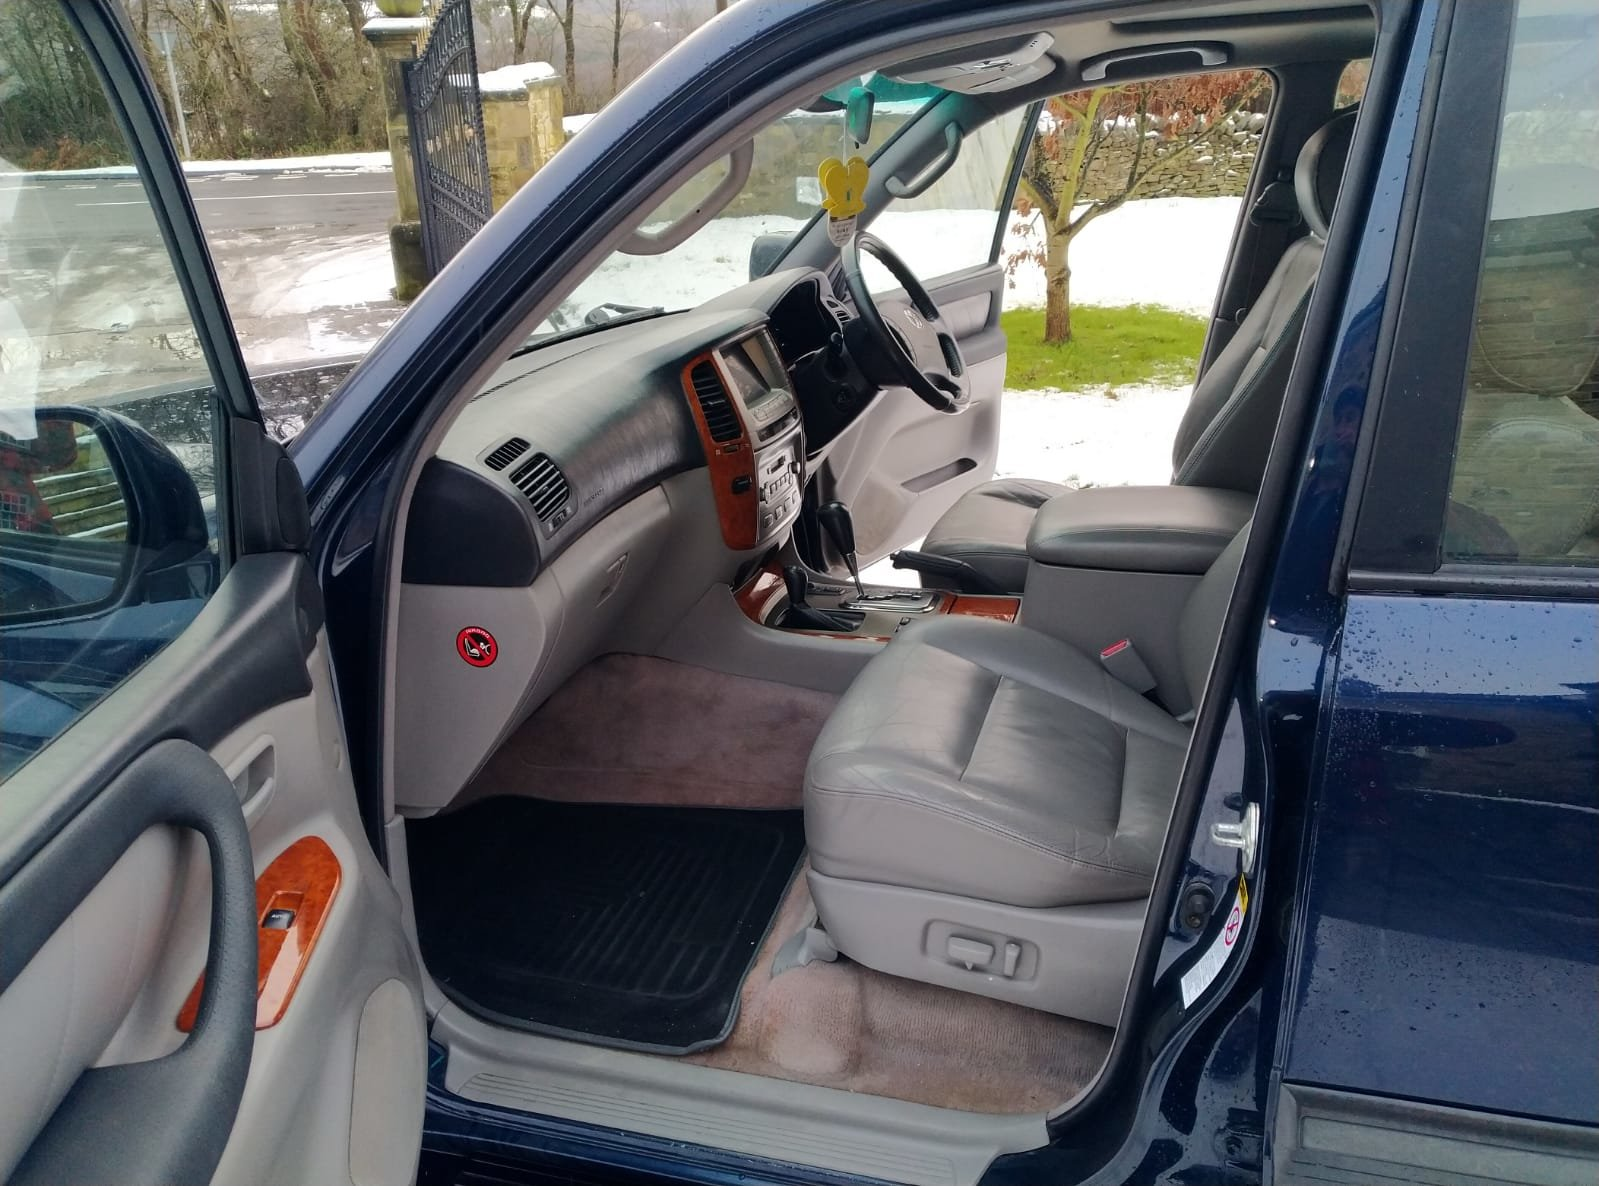 2004 Toyota Land cruiser Amazon TD 4.2 Auto For Sale (picture 12 of 12)